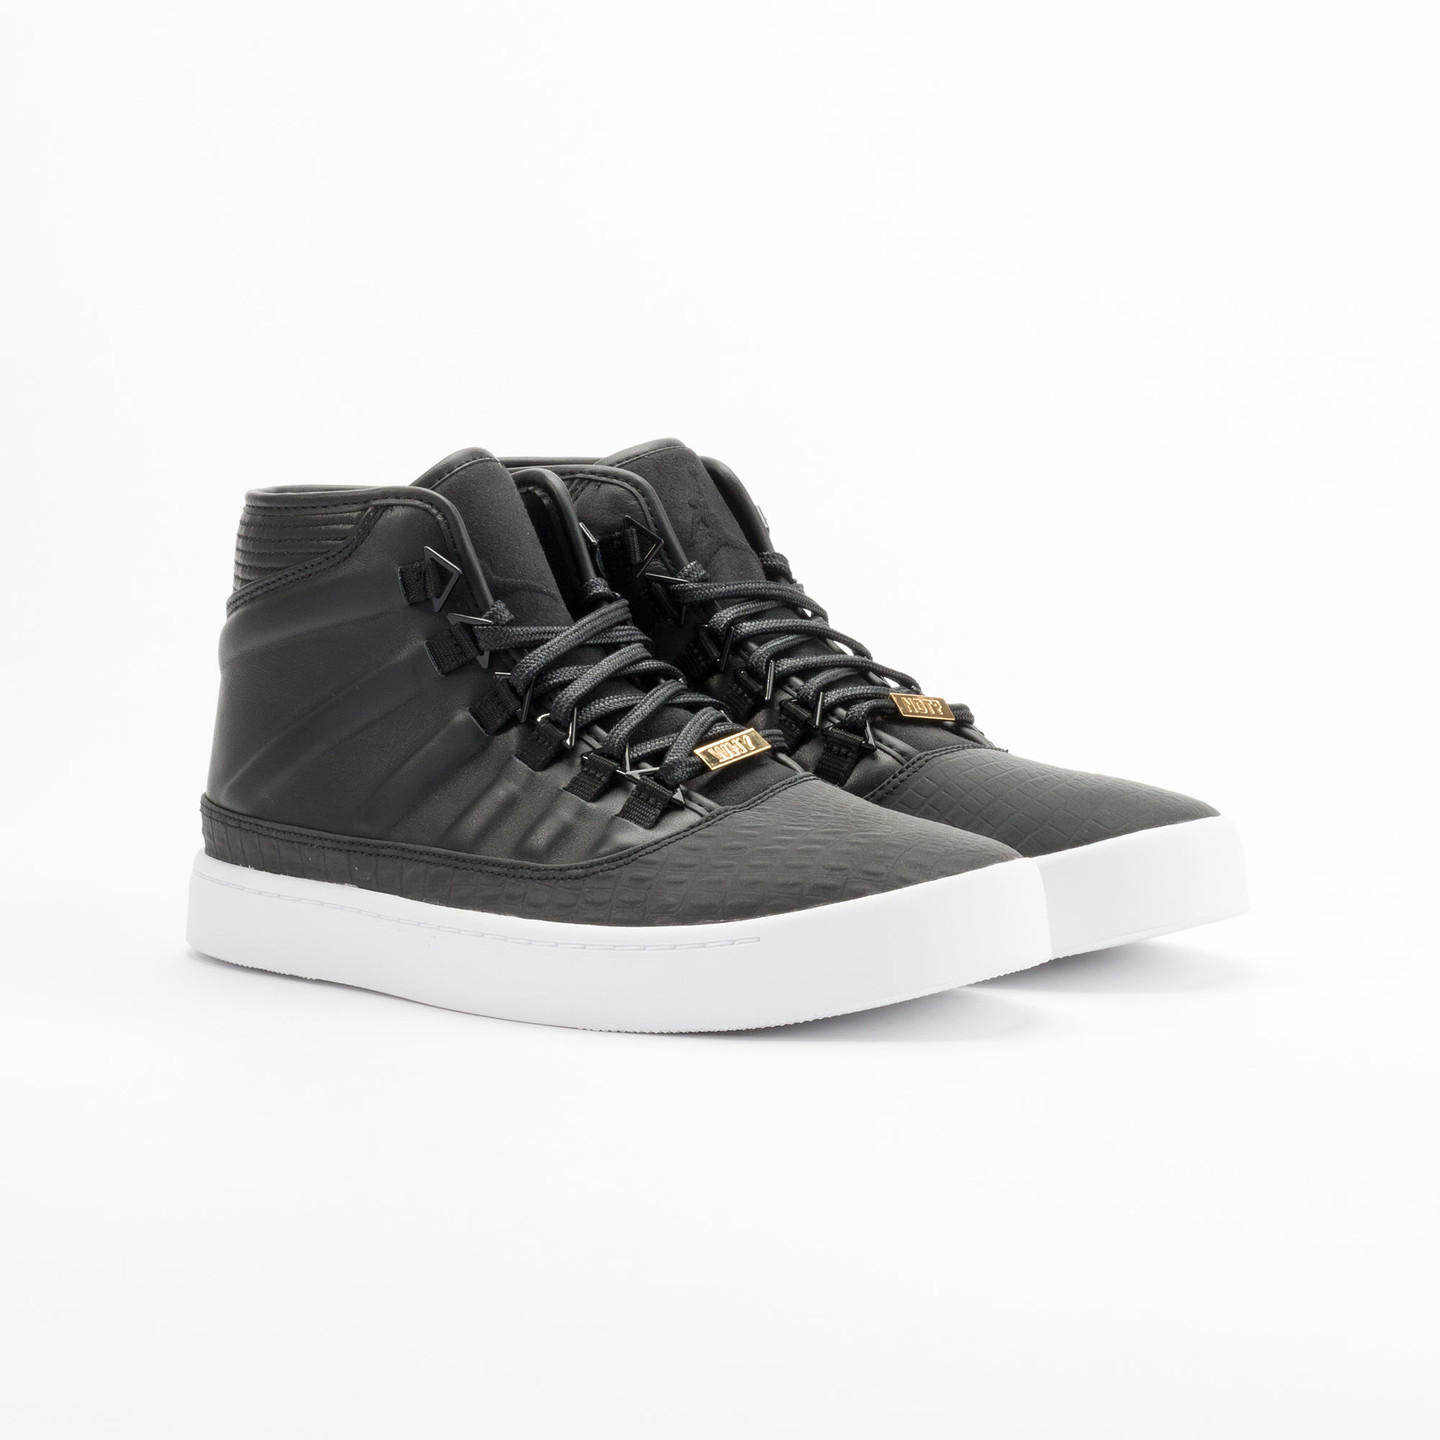 Jordan Westbrook 0 Black Metallic / Gold - White 768934-001-46